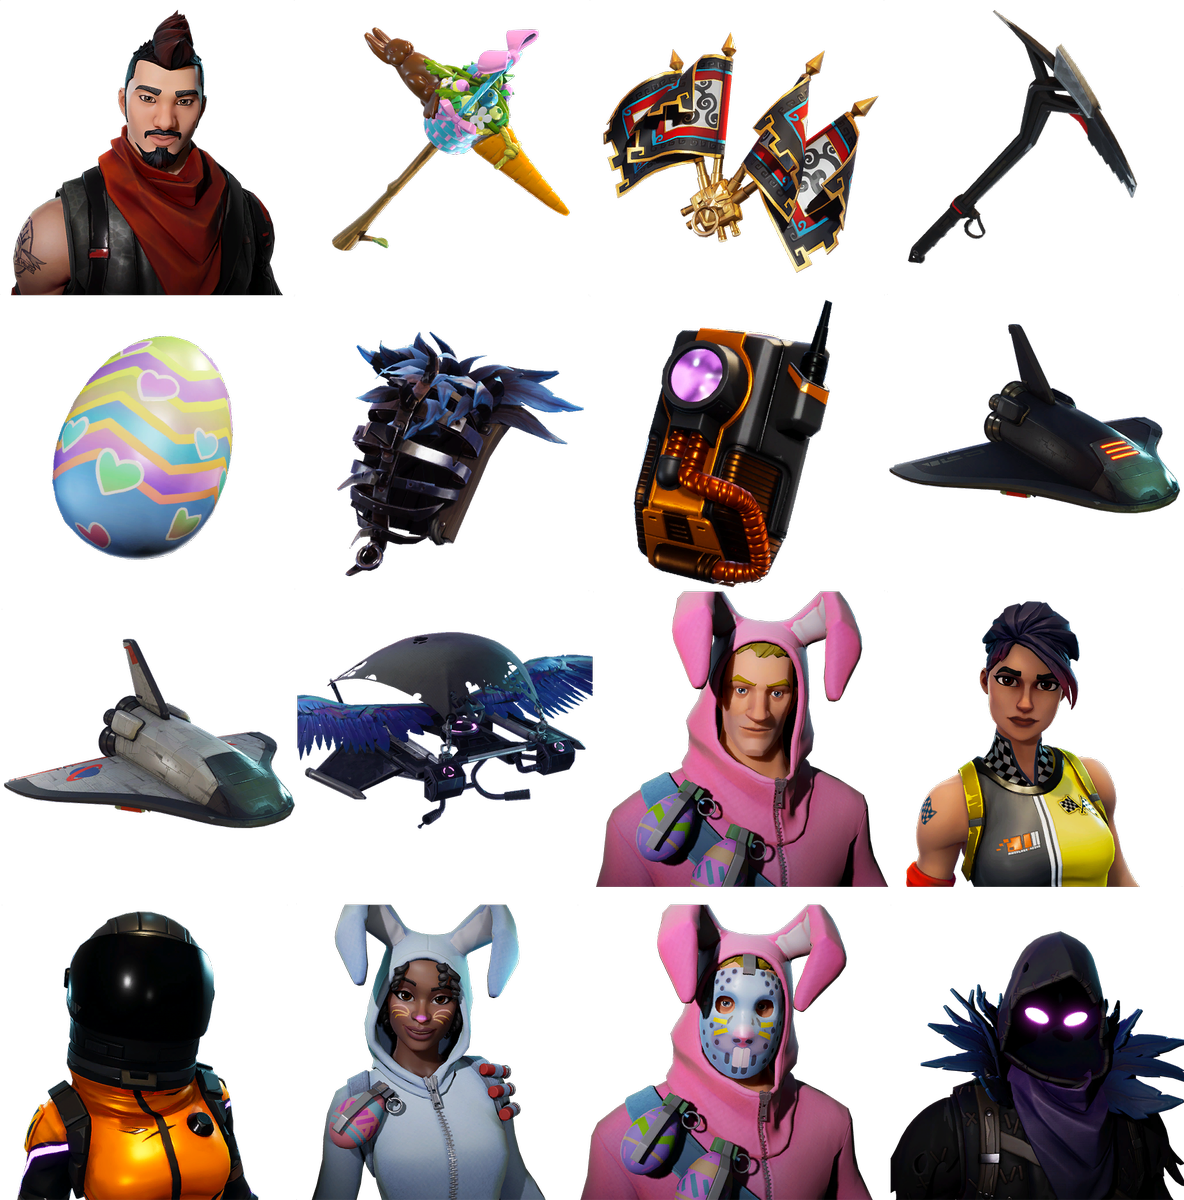 New skins coming to. Raven skin png banner royalty free stock